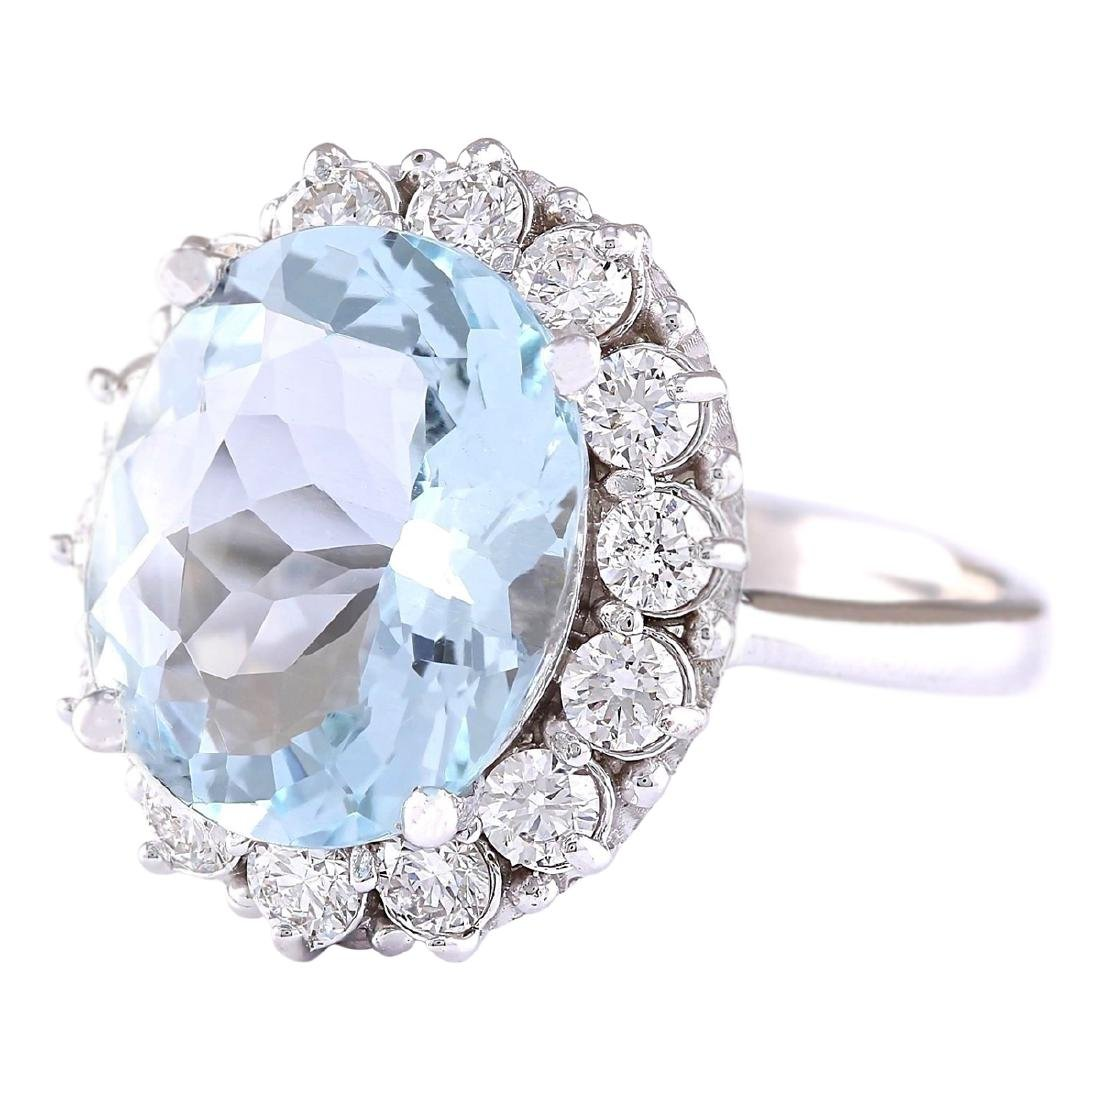 7.01 CTW Natural Aquamarine And Diamond Ring In 18K - 2